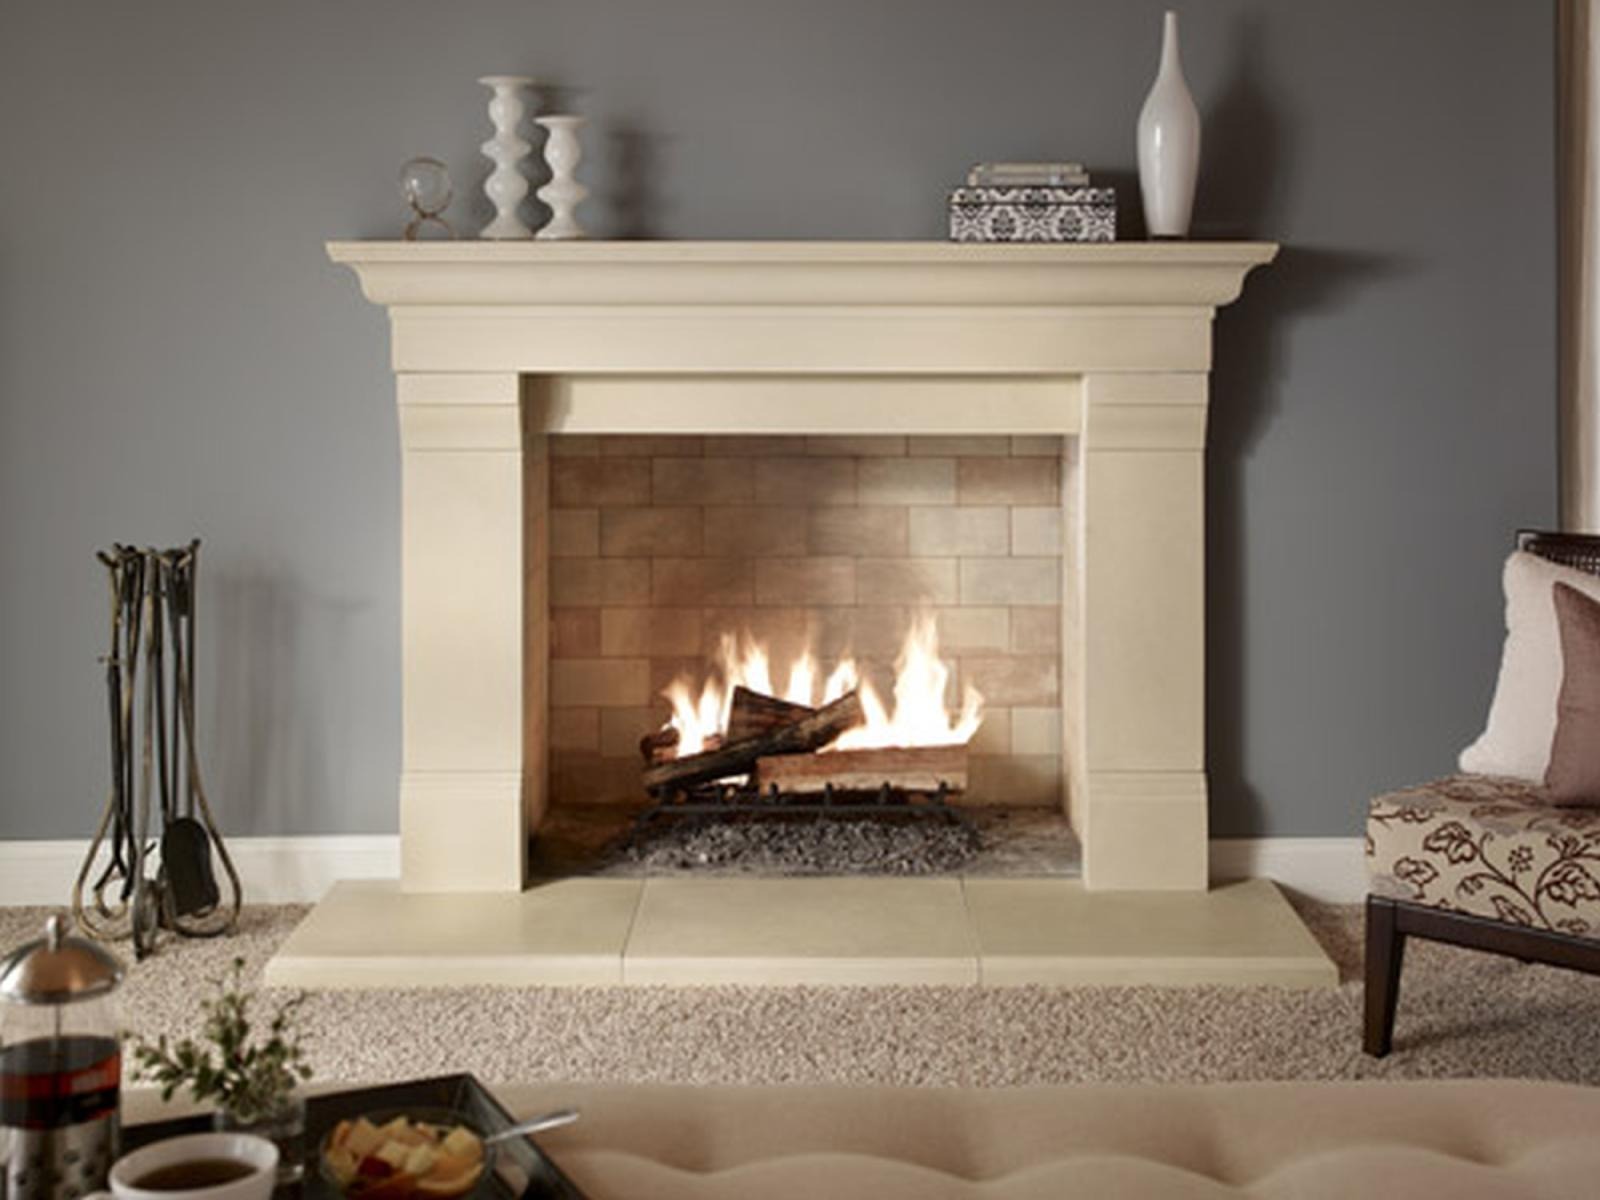 How to clean a limestone fireplace surround fireplace for Wood fireplace surround designs